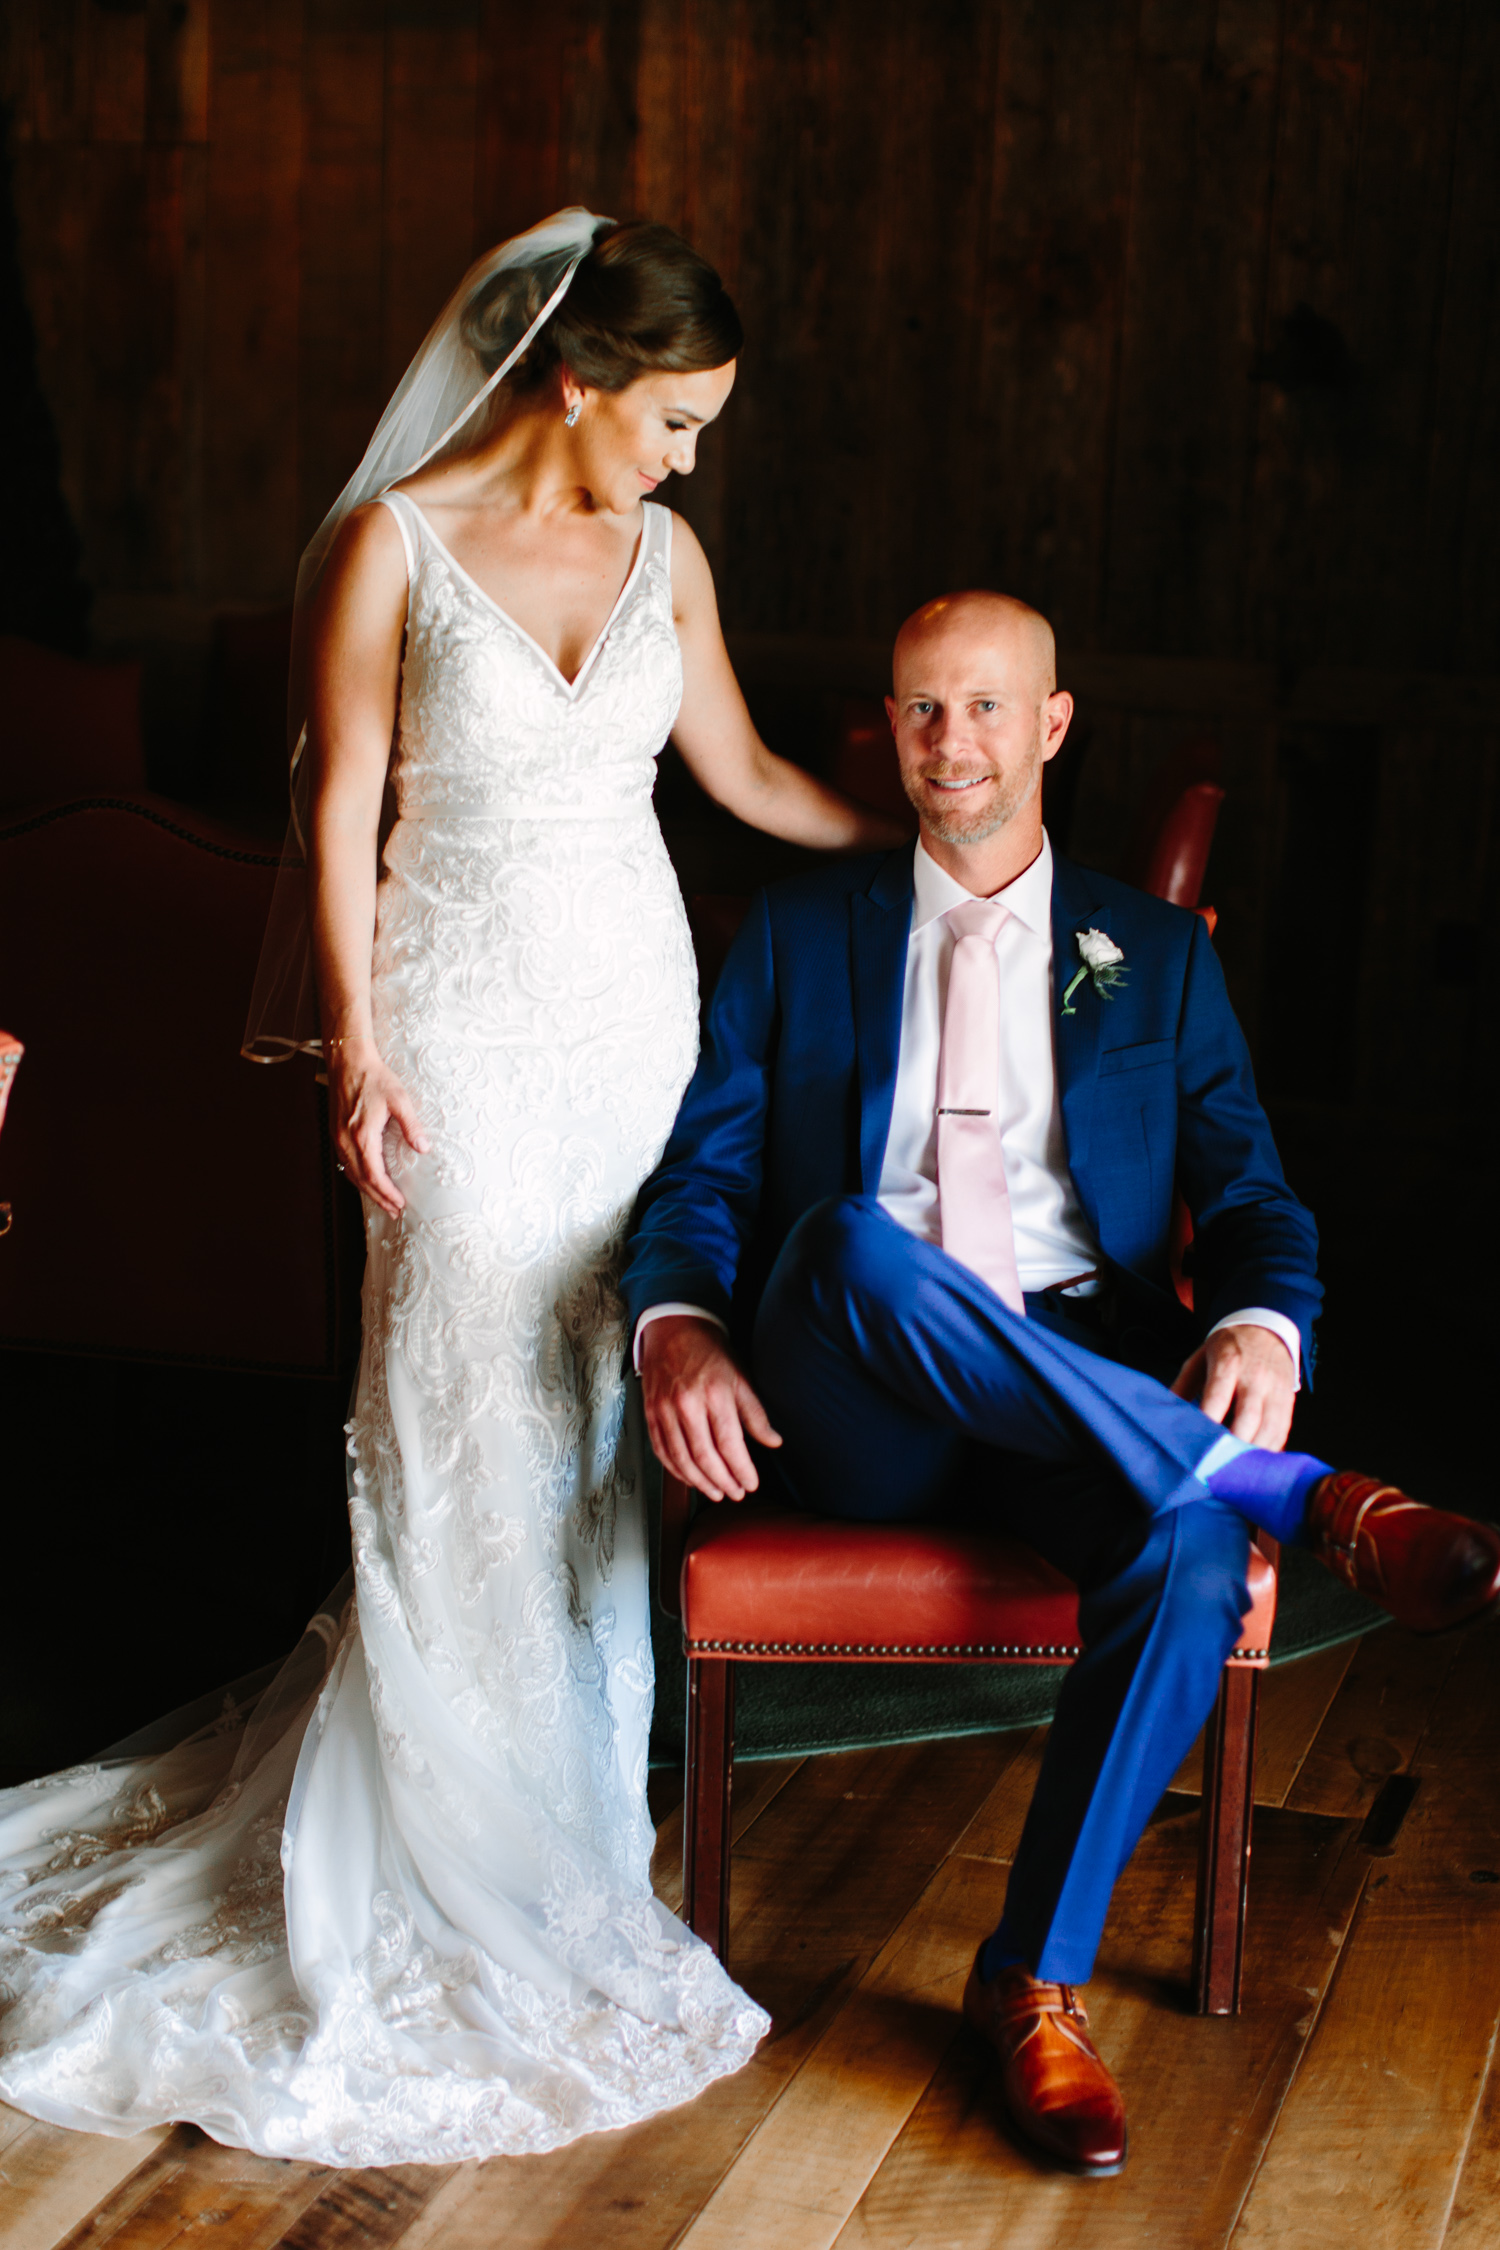 Moody Bride & Groom Portraits // Tennessee Photographer // Suzy Collins Photography // The Olde Farm